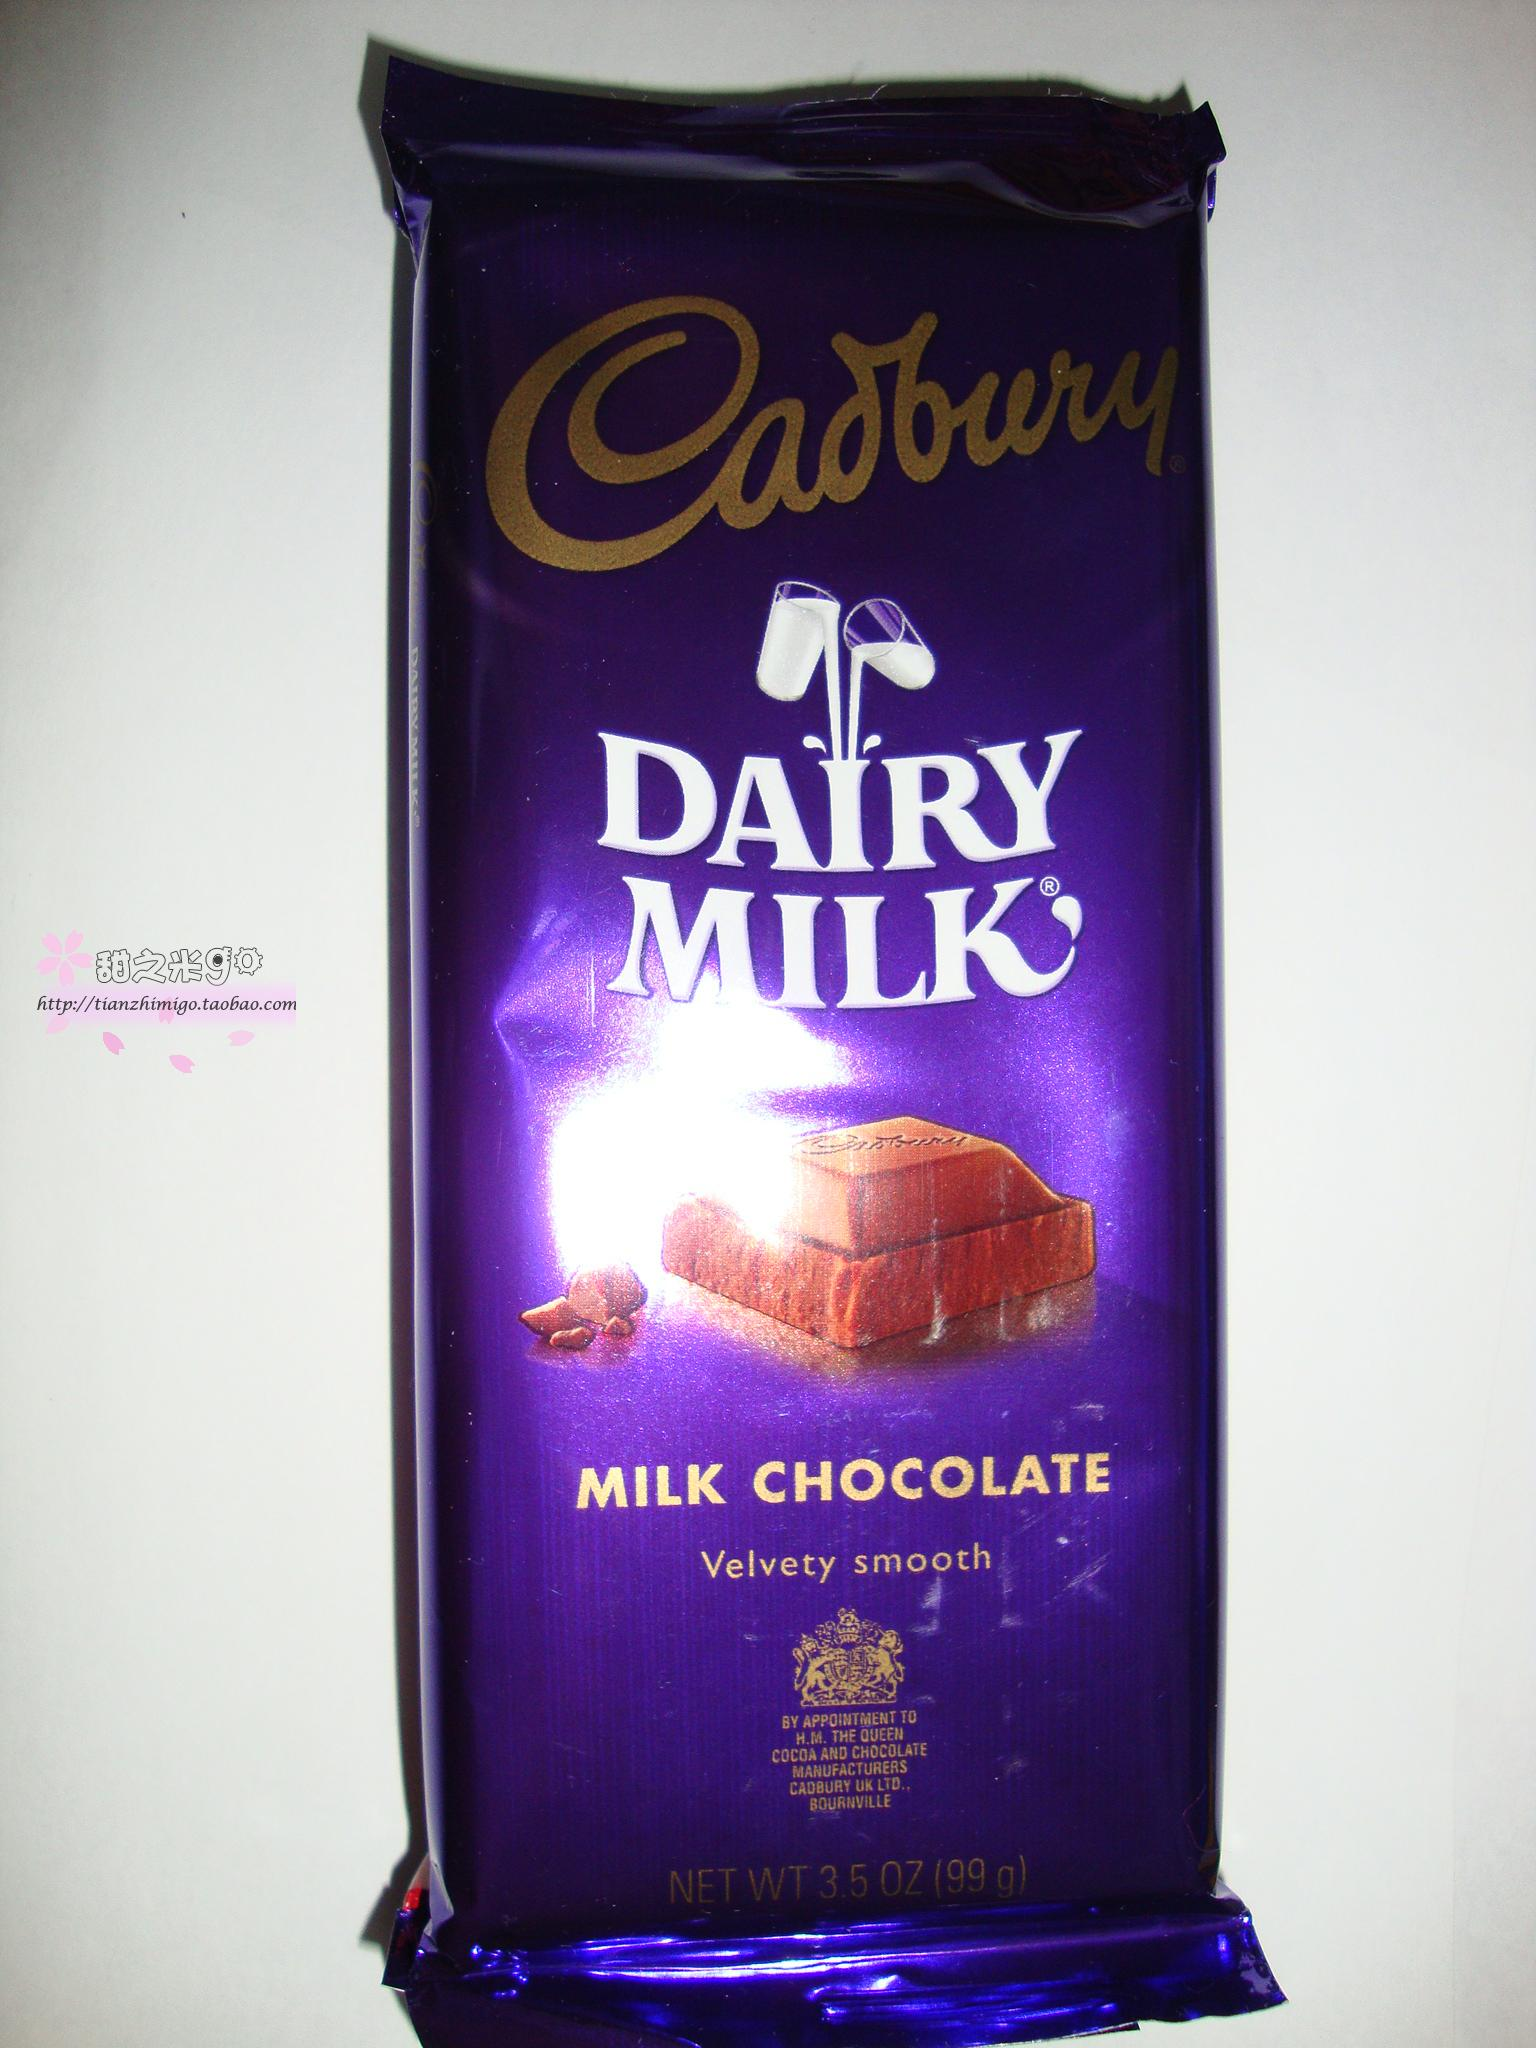 cadbury chocolate demographics Cadbury's scannable chocolate boxes activate a video message cadbury, the uk population growth and gains in consumer spending have provided a reliable source.